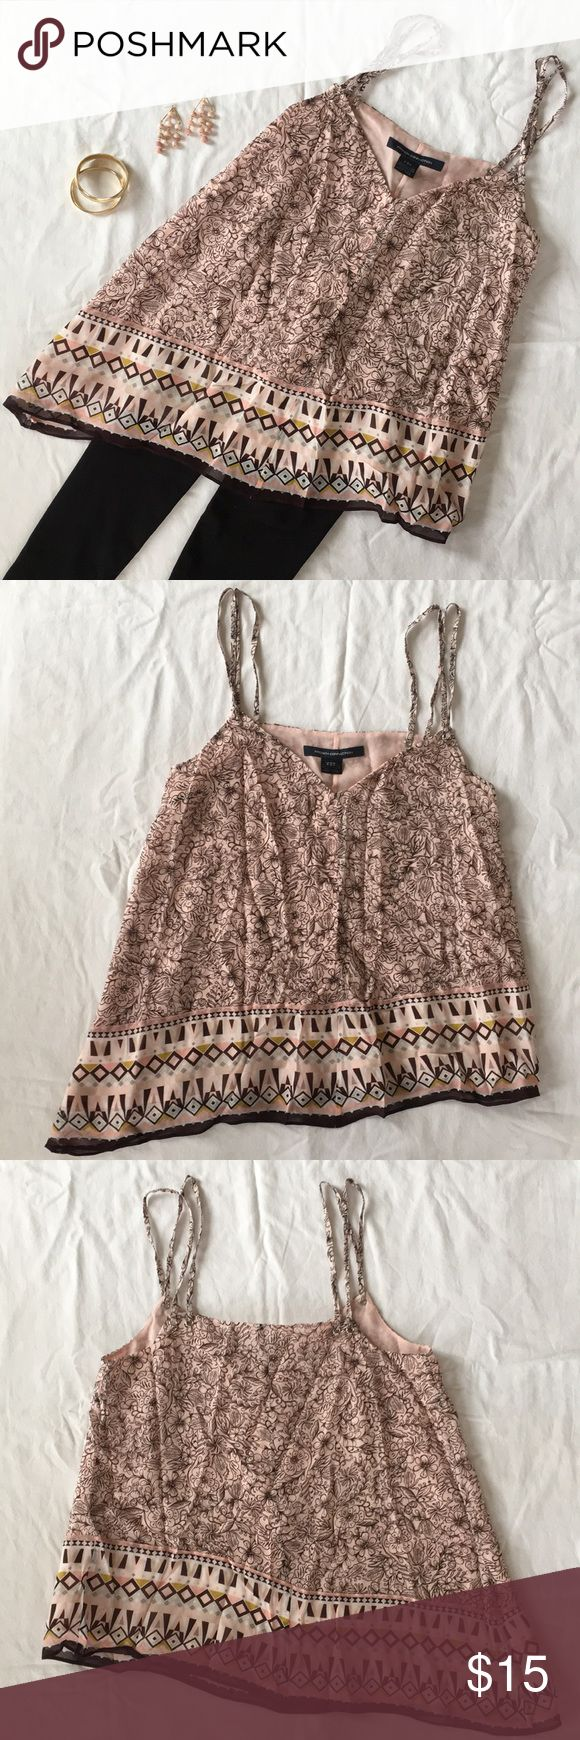 French Connection Ballet Pink Top Cute and fomfy, flowy French Connection tank top. Soft and pretty ballet pink with chocolate brown design. Decorative bottom with asymmetrical hem and cute detailed double straps. Lined in soft ballet pink. Cute with leggings or skinny jeans! Purchased and removed tags but never wore! Moving and cleaning out my closet! French Connection Tops Tank Tops